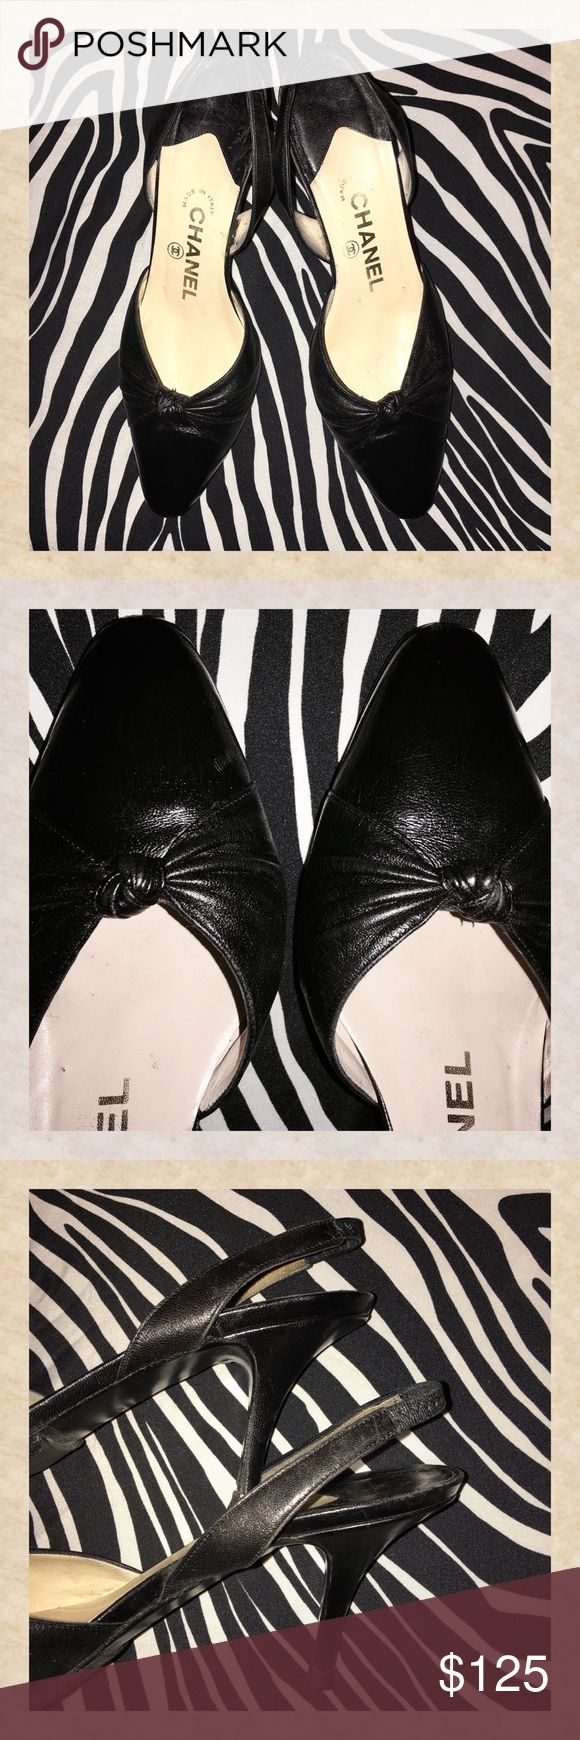 CHANEL Slingback Pumps Soft black leather. Just had new tread put on leather soles.  Made in Italy 🇮🇹 CHANEL Shoes Heels